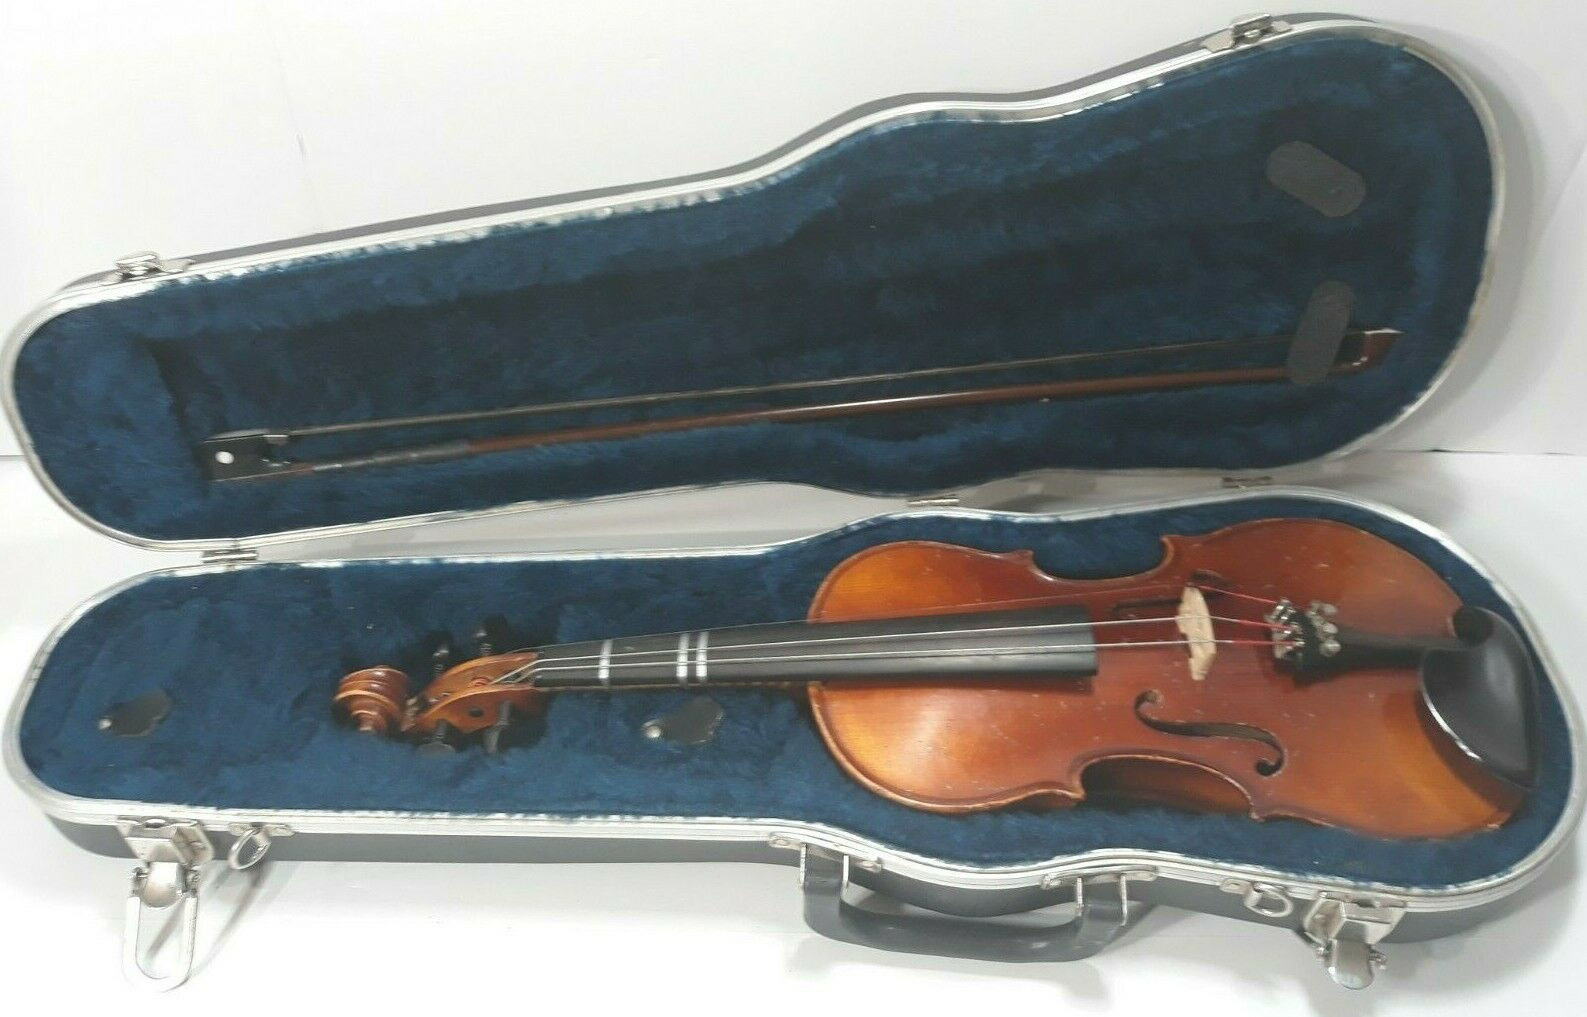 Vintage Ton-Klar Dancla 1 2 Violin With Case & Cheek Rest Lewis & Sons No 126